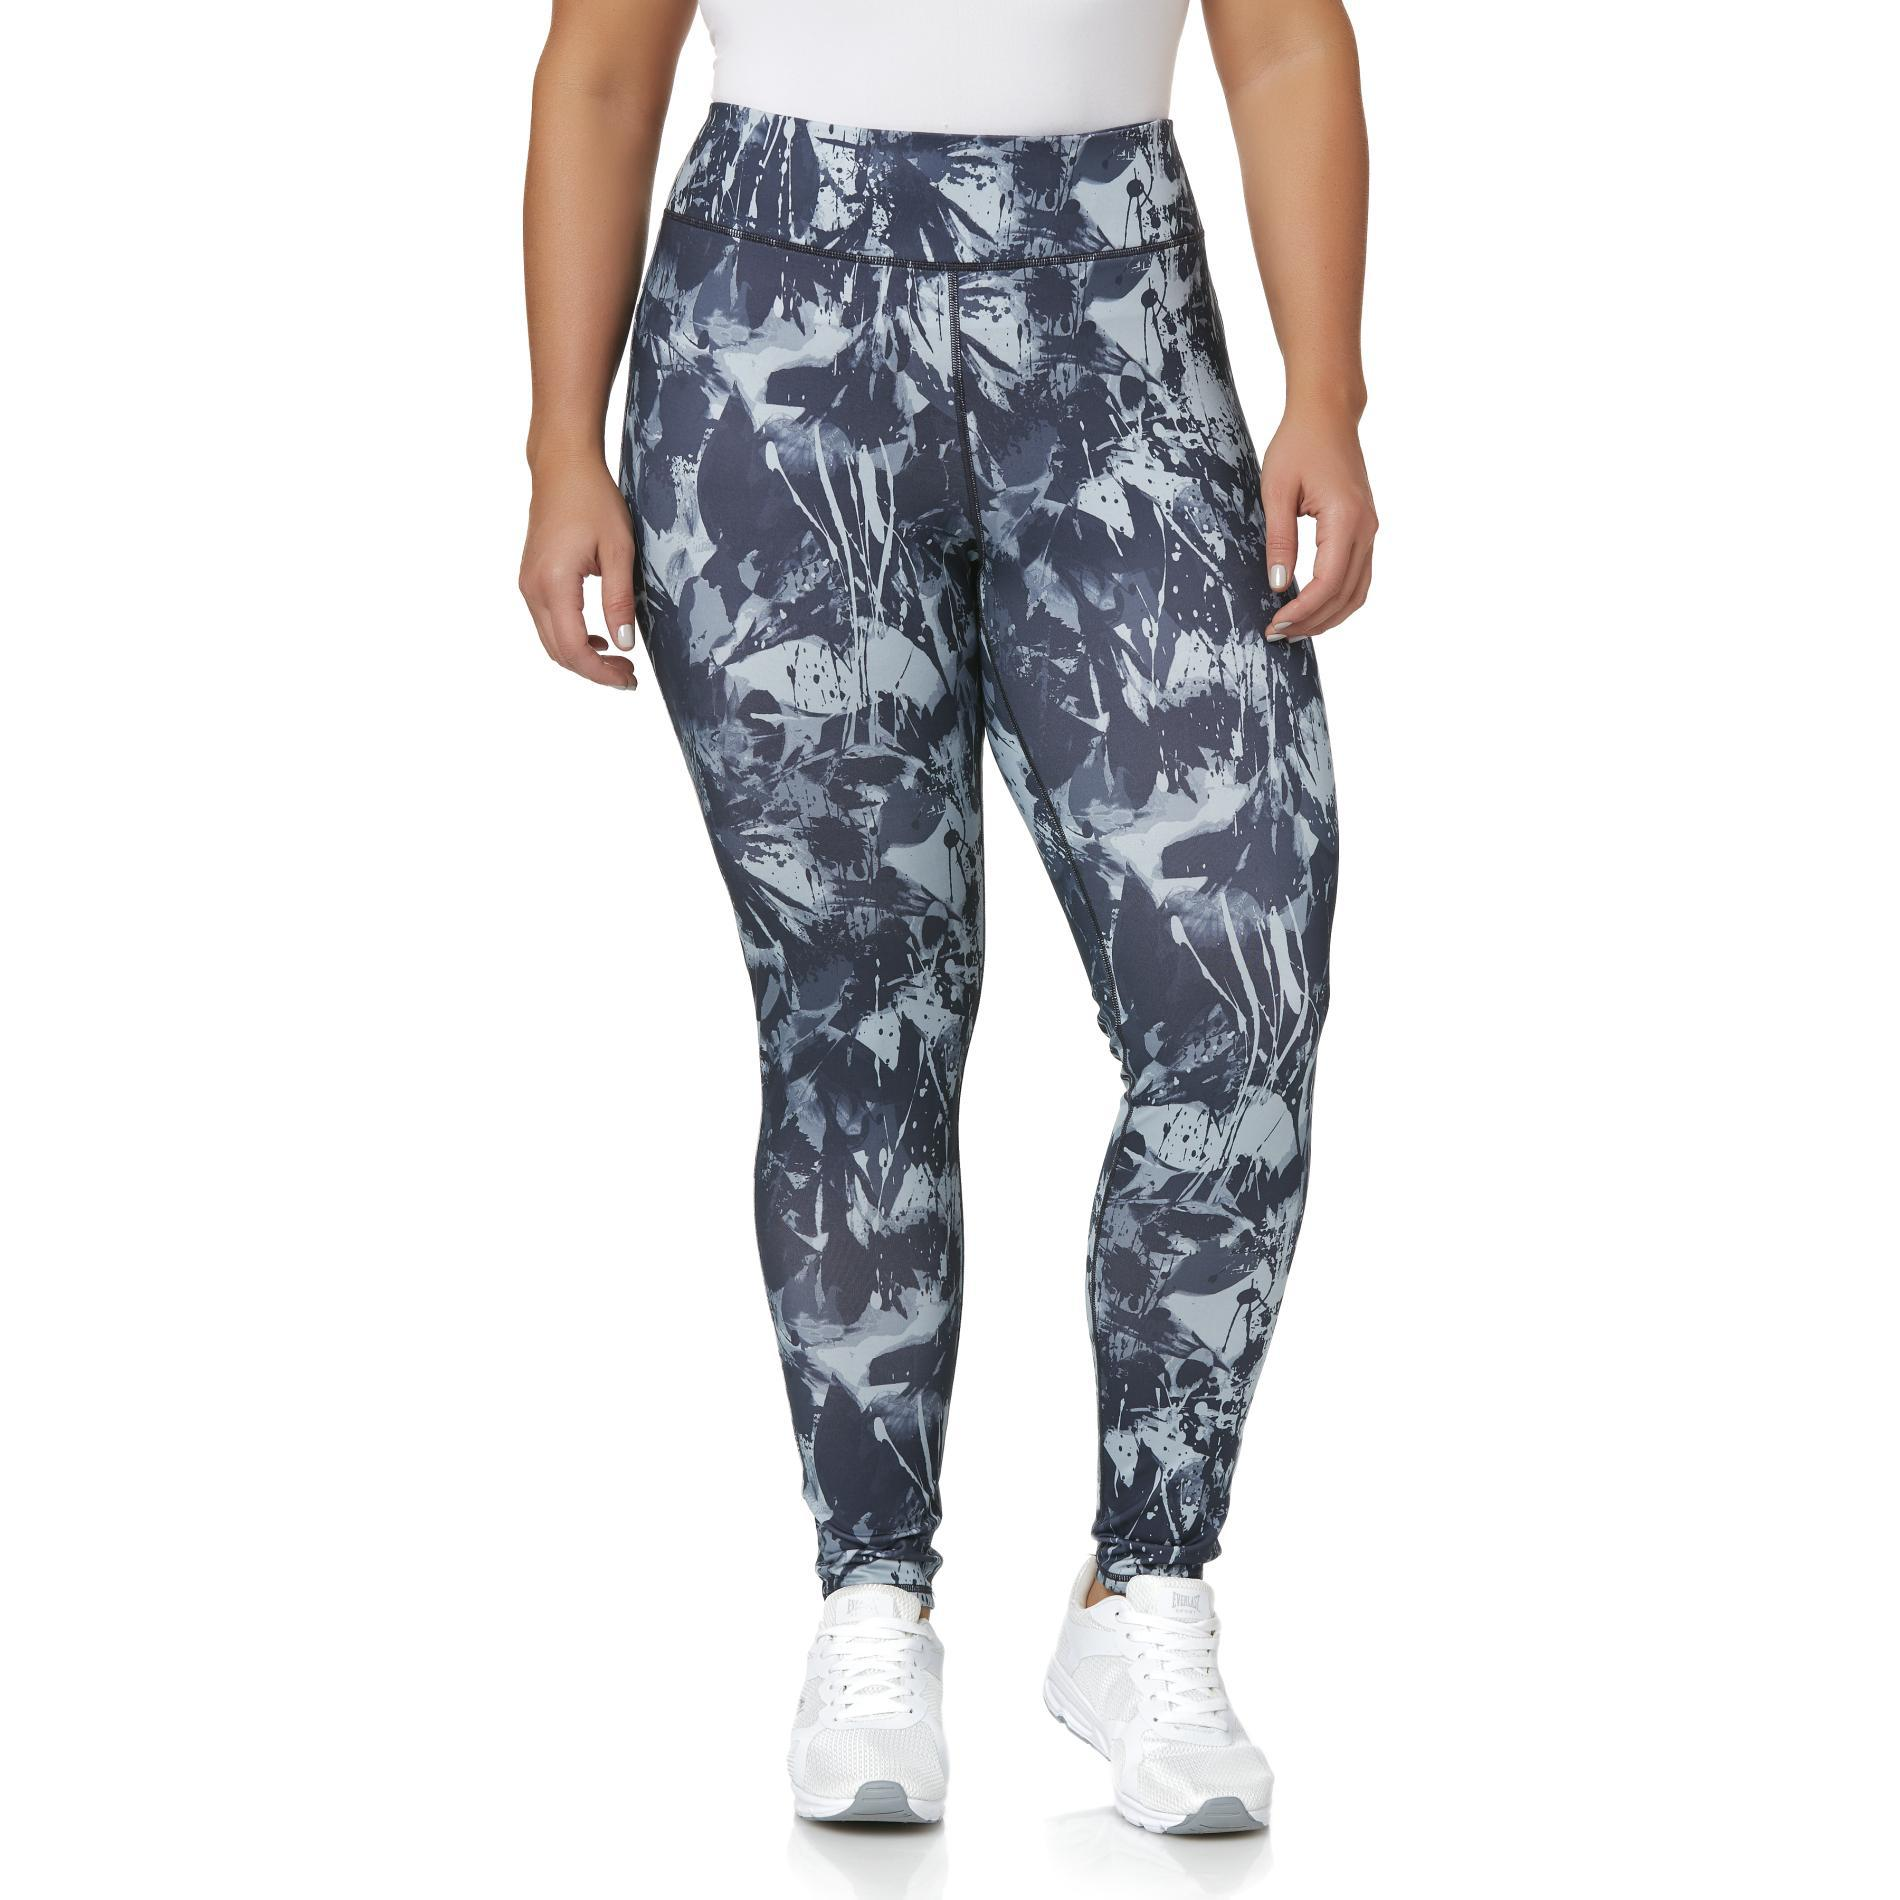 Everlast® Sport Women's Plus High-Waist Athletic Leggings - Abstract